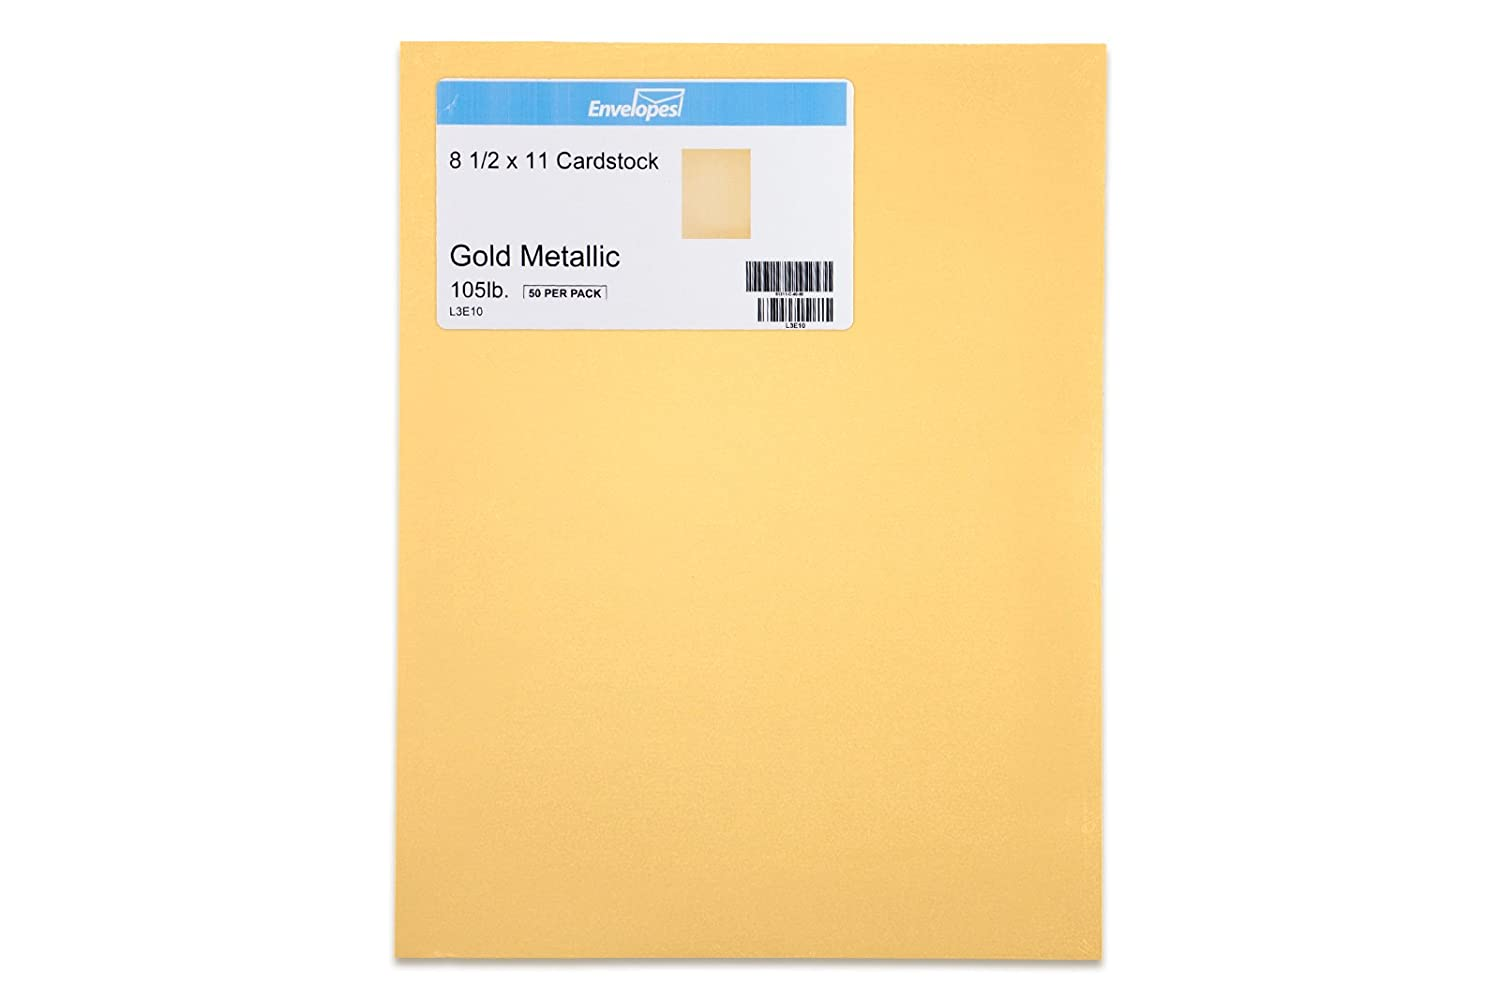 Gold color cardstock paper - Amazon Com 8 1 2 X 11 Cardstock Gold Metallic 50 Qty Perfect For Creating Business Cards Layer Cards Invitations Crafts Various Artistic